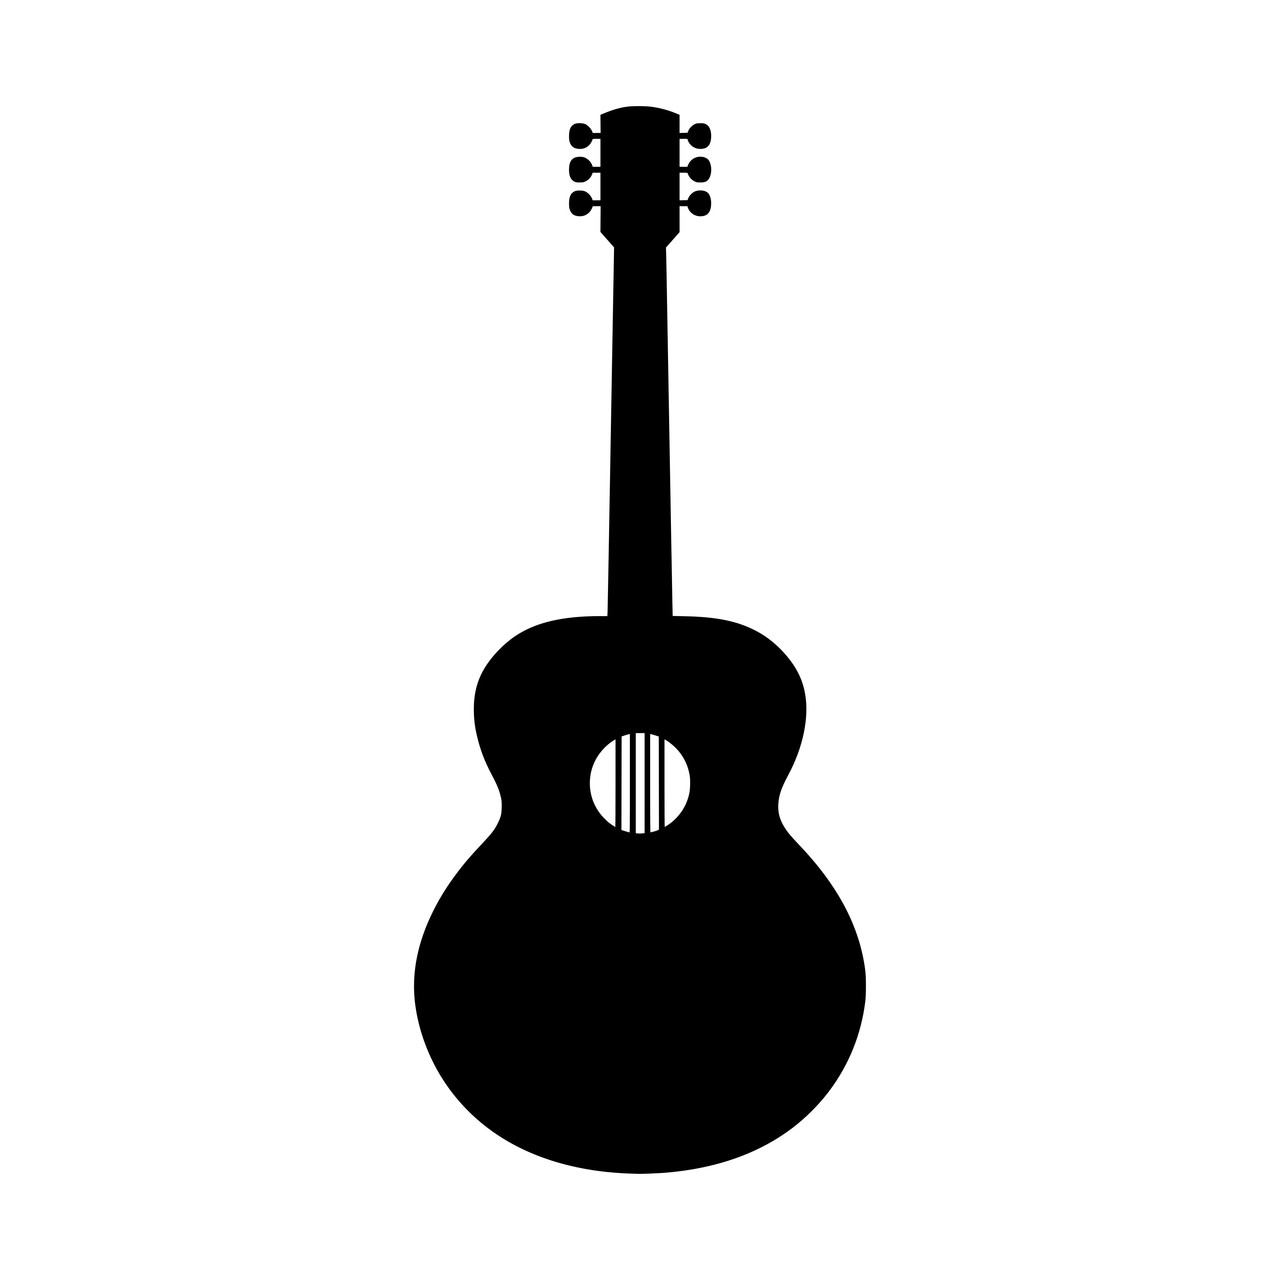 acoustic guitar vinyl decal sticker bluegrass folk country music minglewood trading. Black Bedroom Furniture Sets. Home Design Ideas